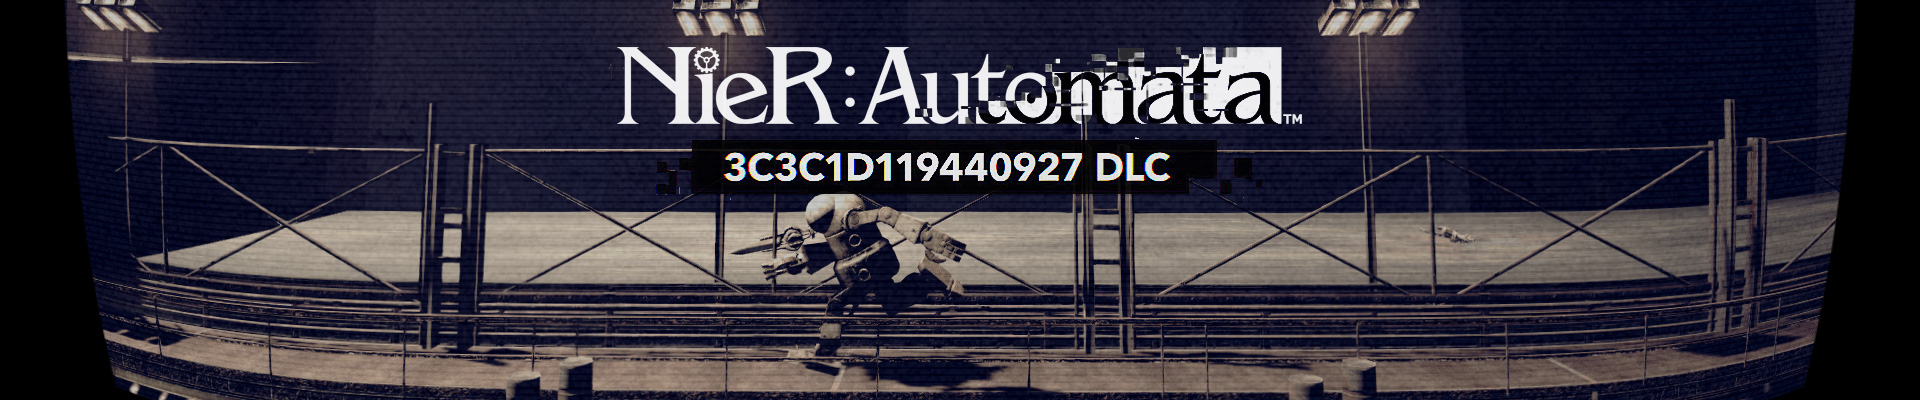 Thoughts on: NieR:Automata — 3C3C1D119440927